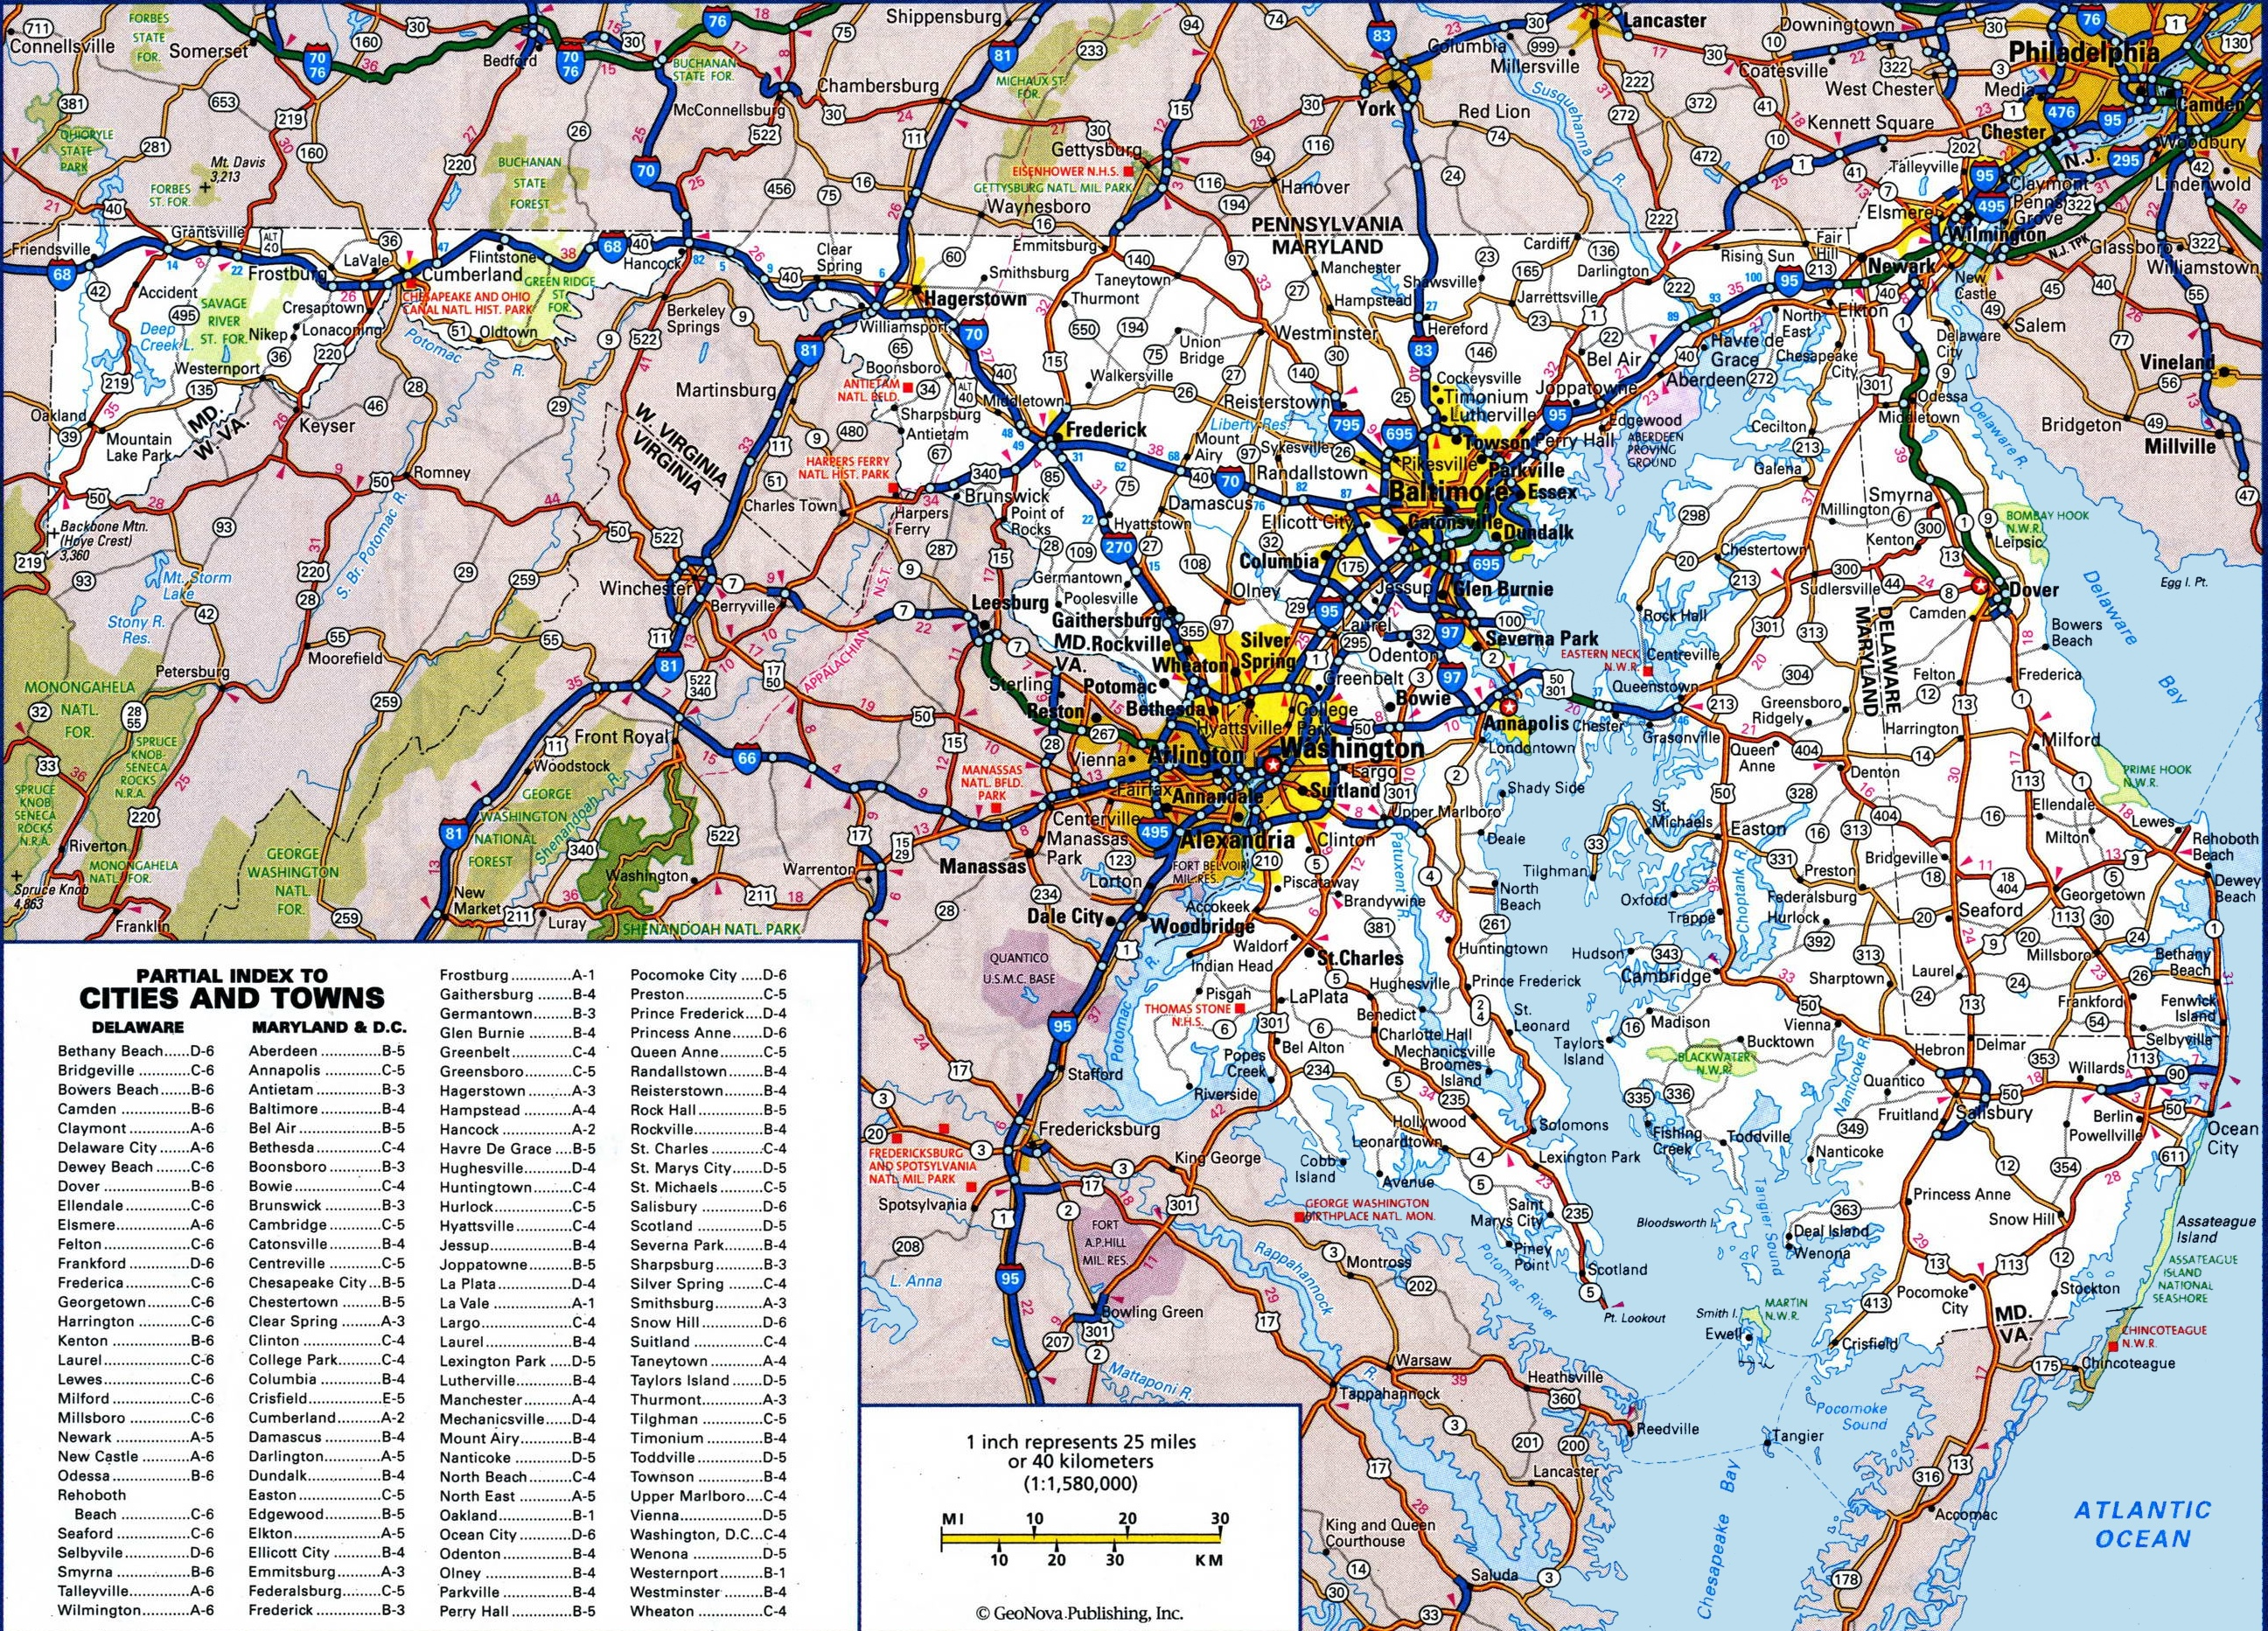 Large Detailed Map Of Maryland With Cities And Towns - Usa map with cities and states detailed